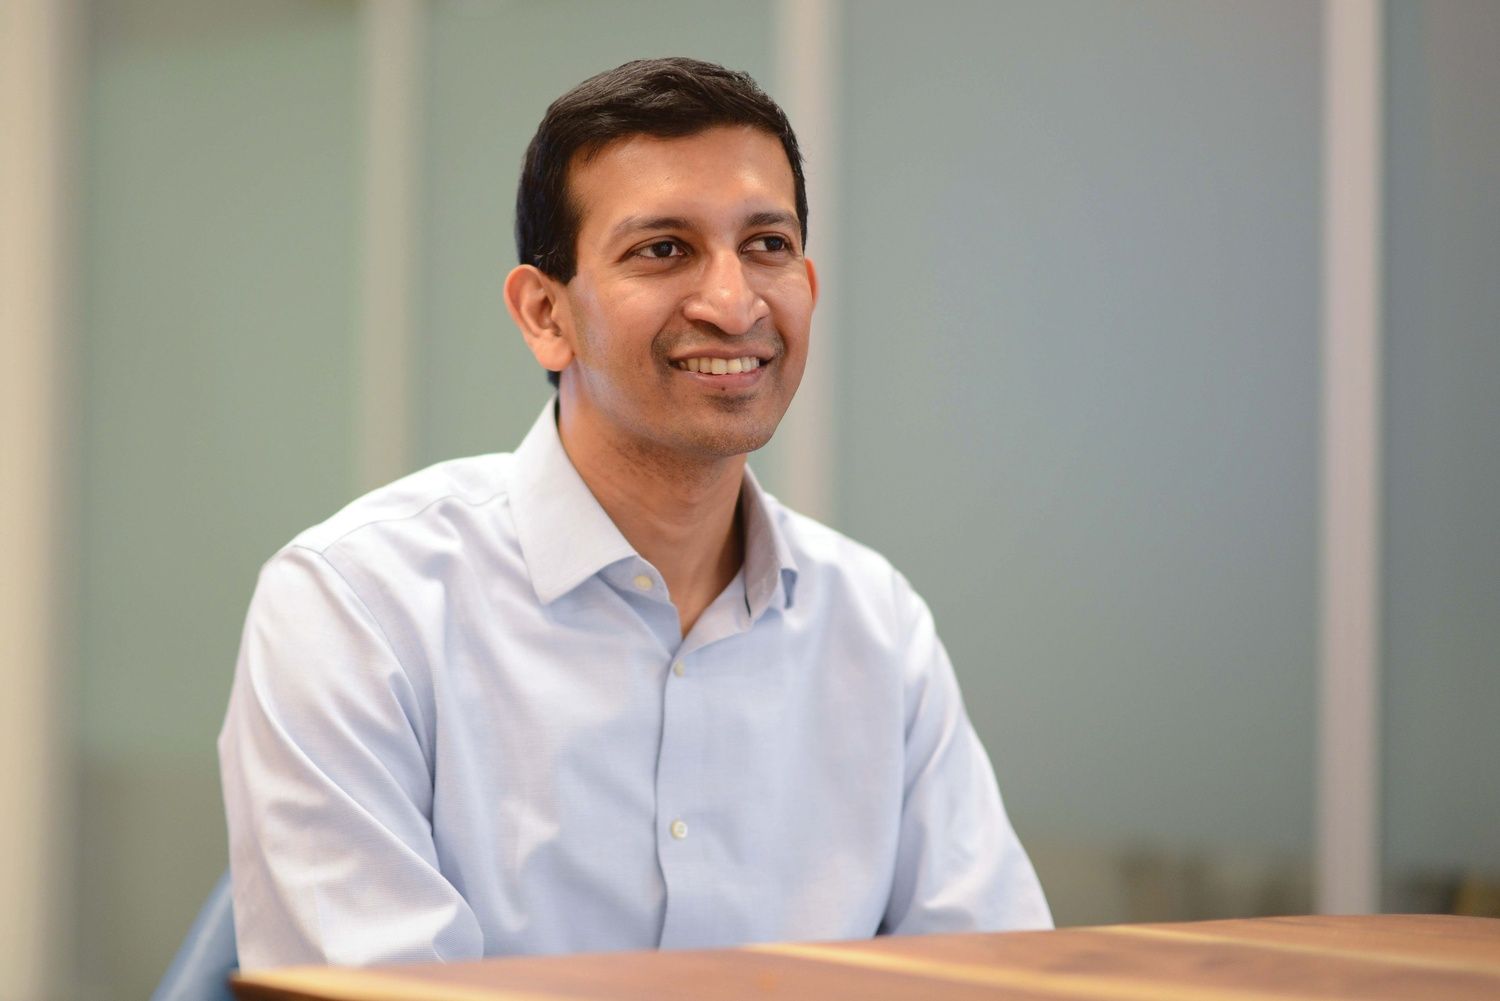 Raj Chetty '00, the William A. Ackman Professor of Public Economics, has returned to teach at Harvard after spending three years at Stanford.